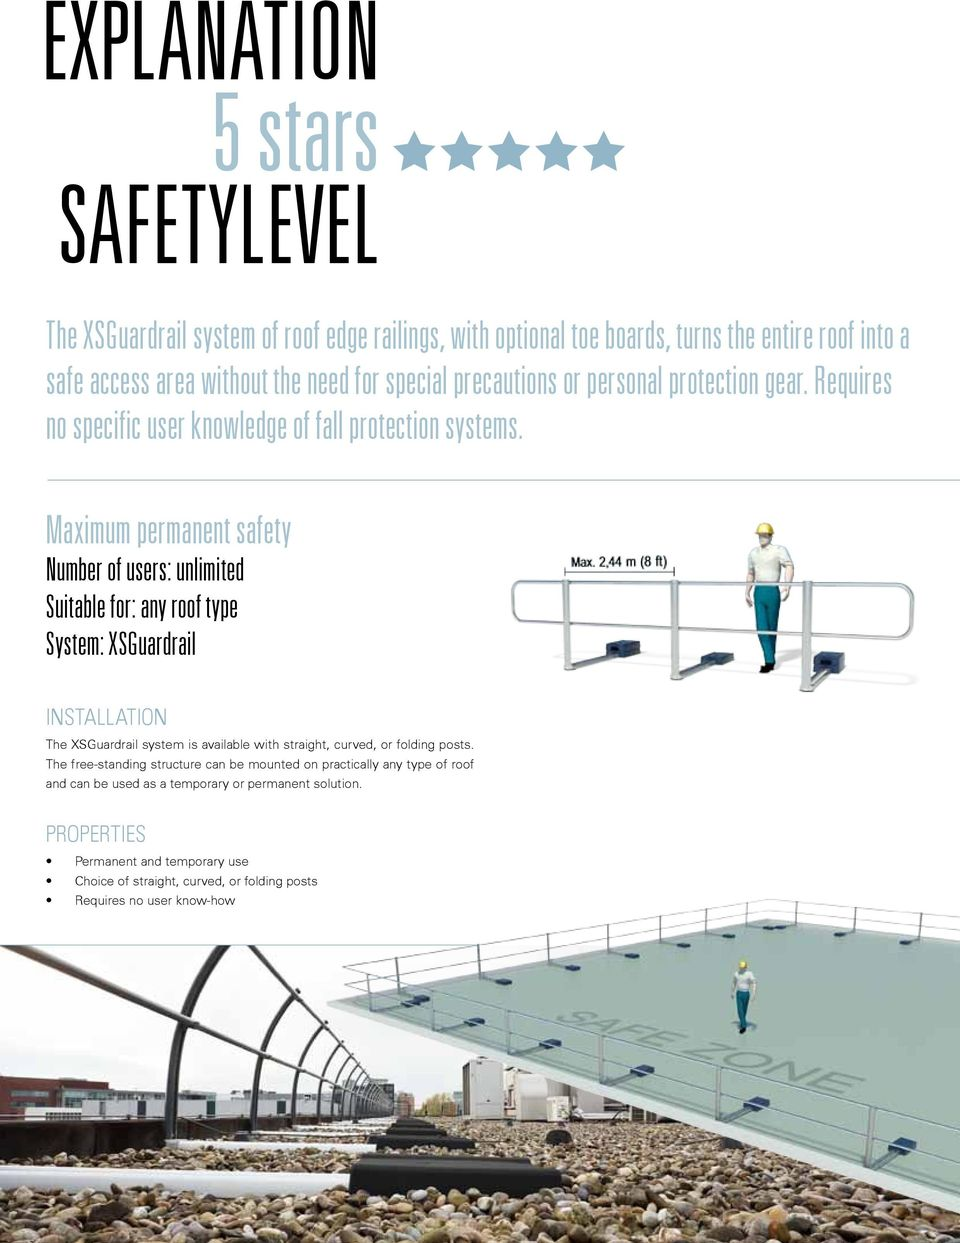 Maximum permanent safety Number of users: unlimited Suitable for: any roof type System: XSGuardrail Installation The XSGuardrail system is available with straight, curved, or